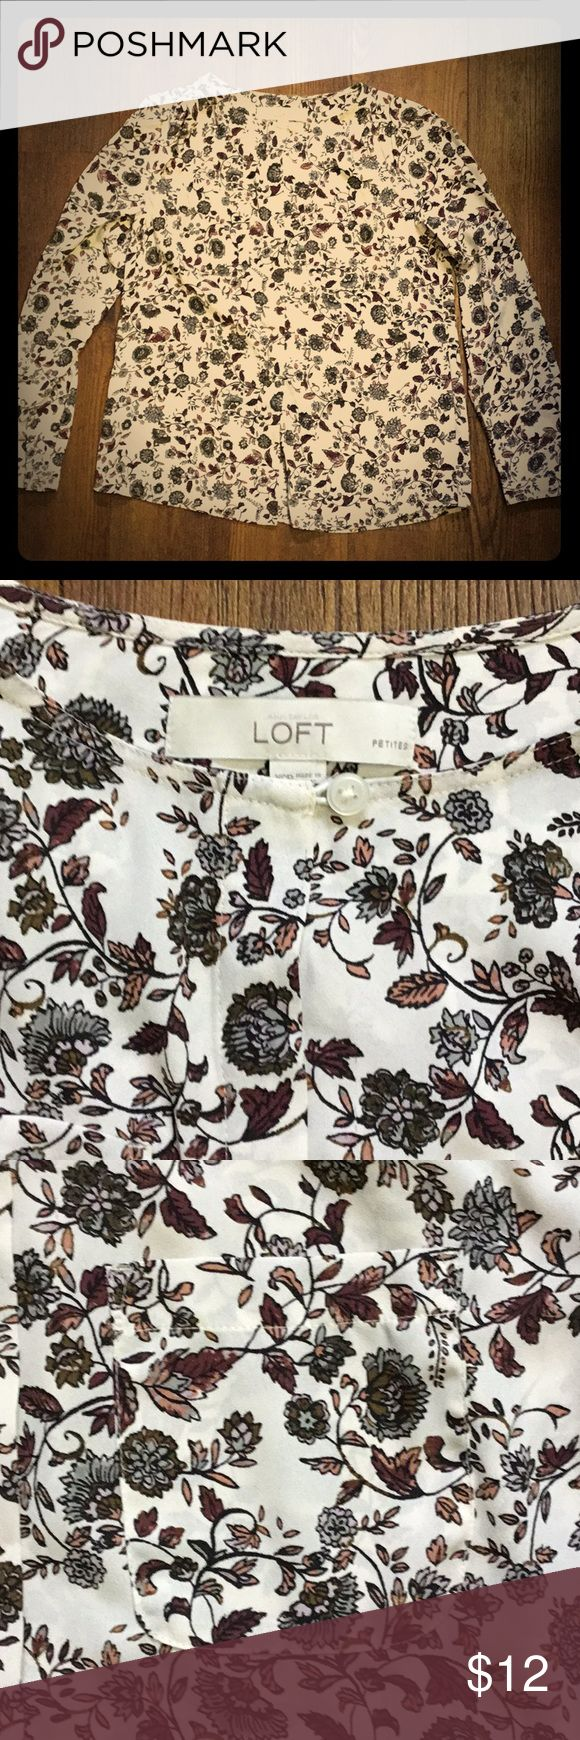 Loft petite blouse Sweet floral button down blouse from Loft.  It's a cream colored background with antique grey, burgundy, and rose flowers.  This top will suit anyone sharing an obsession for all things vintage-looking.  It's sized as XS petit. LOFT Tops Blouses